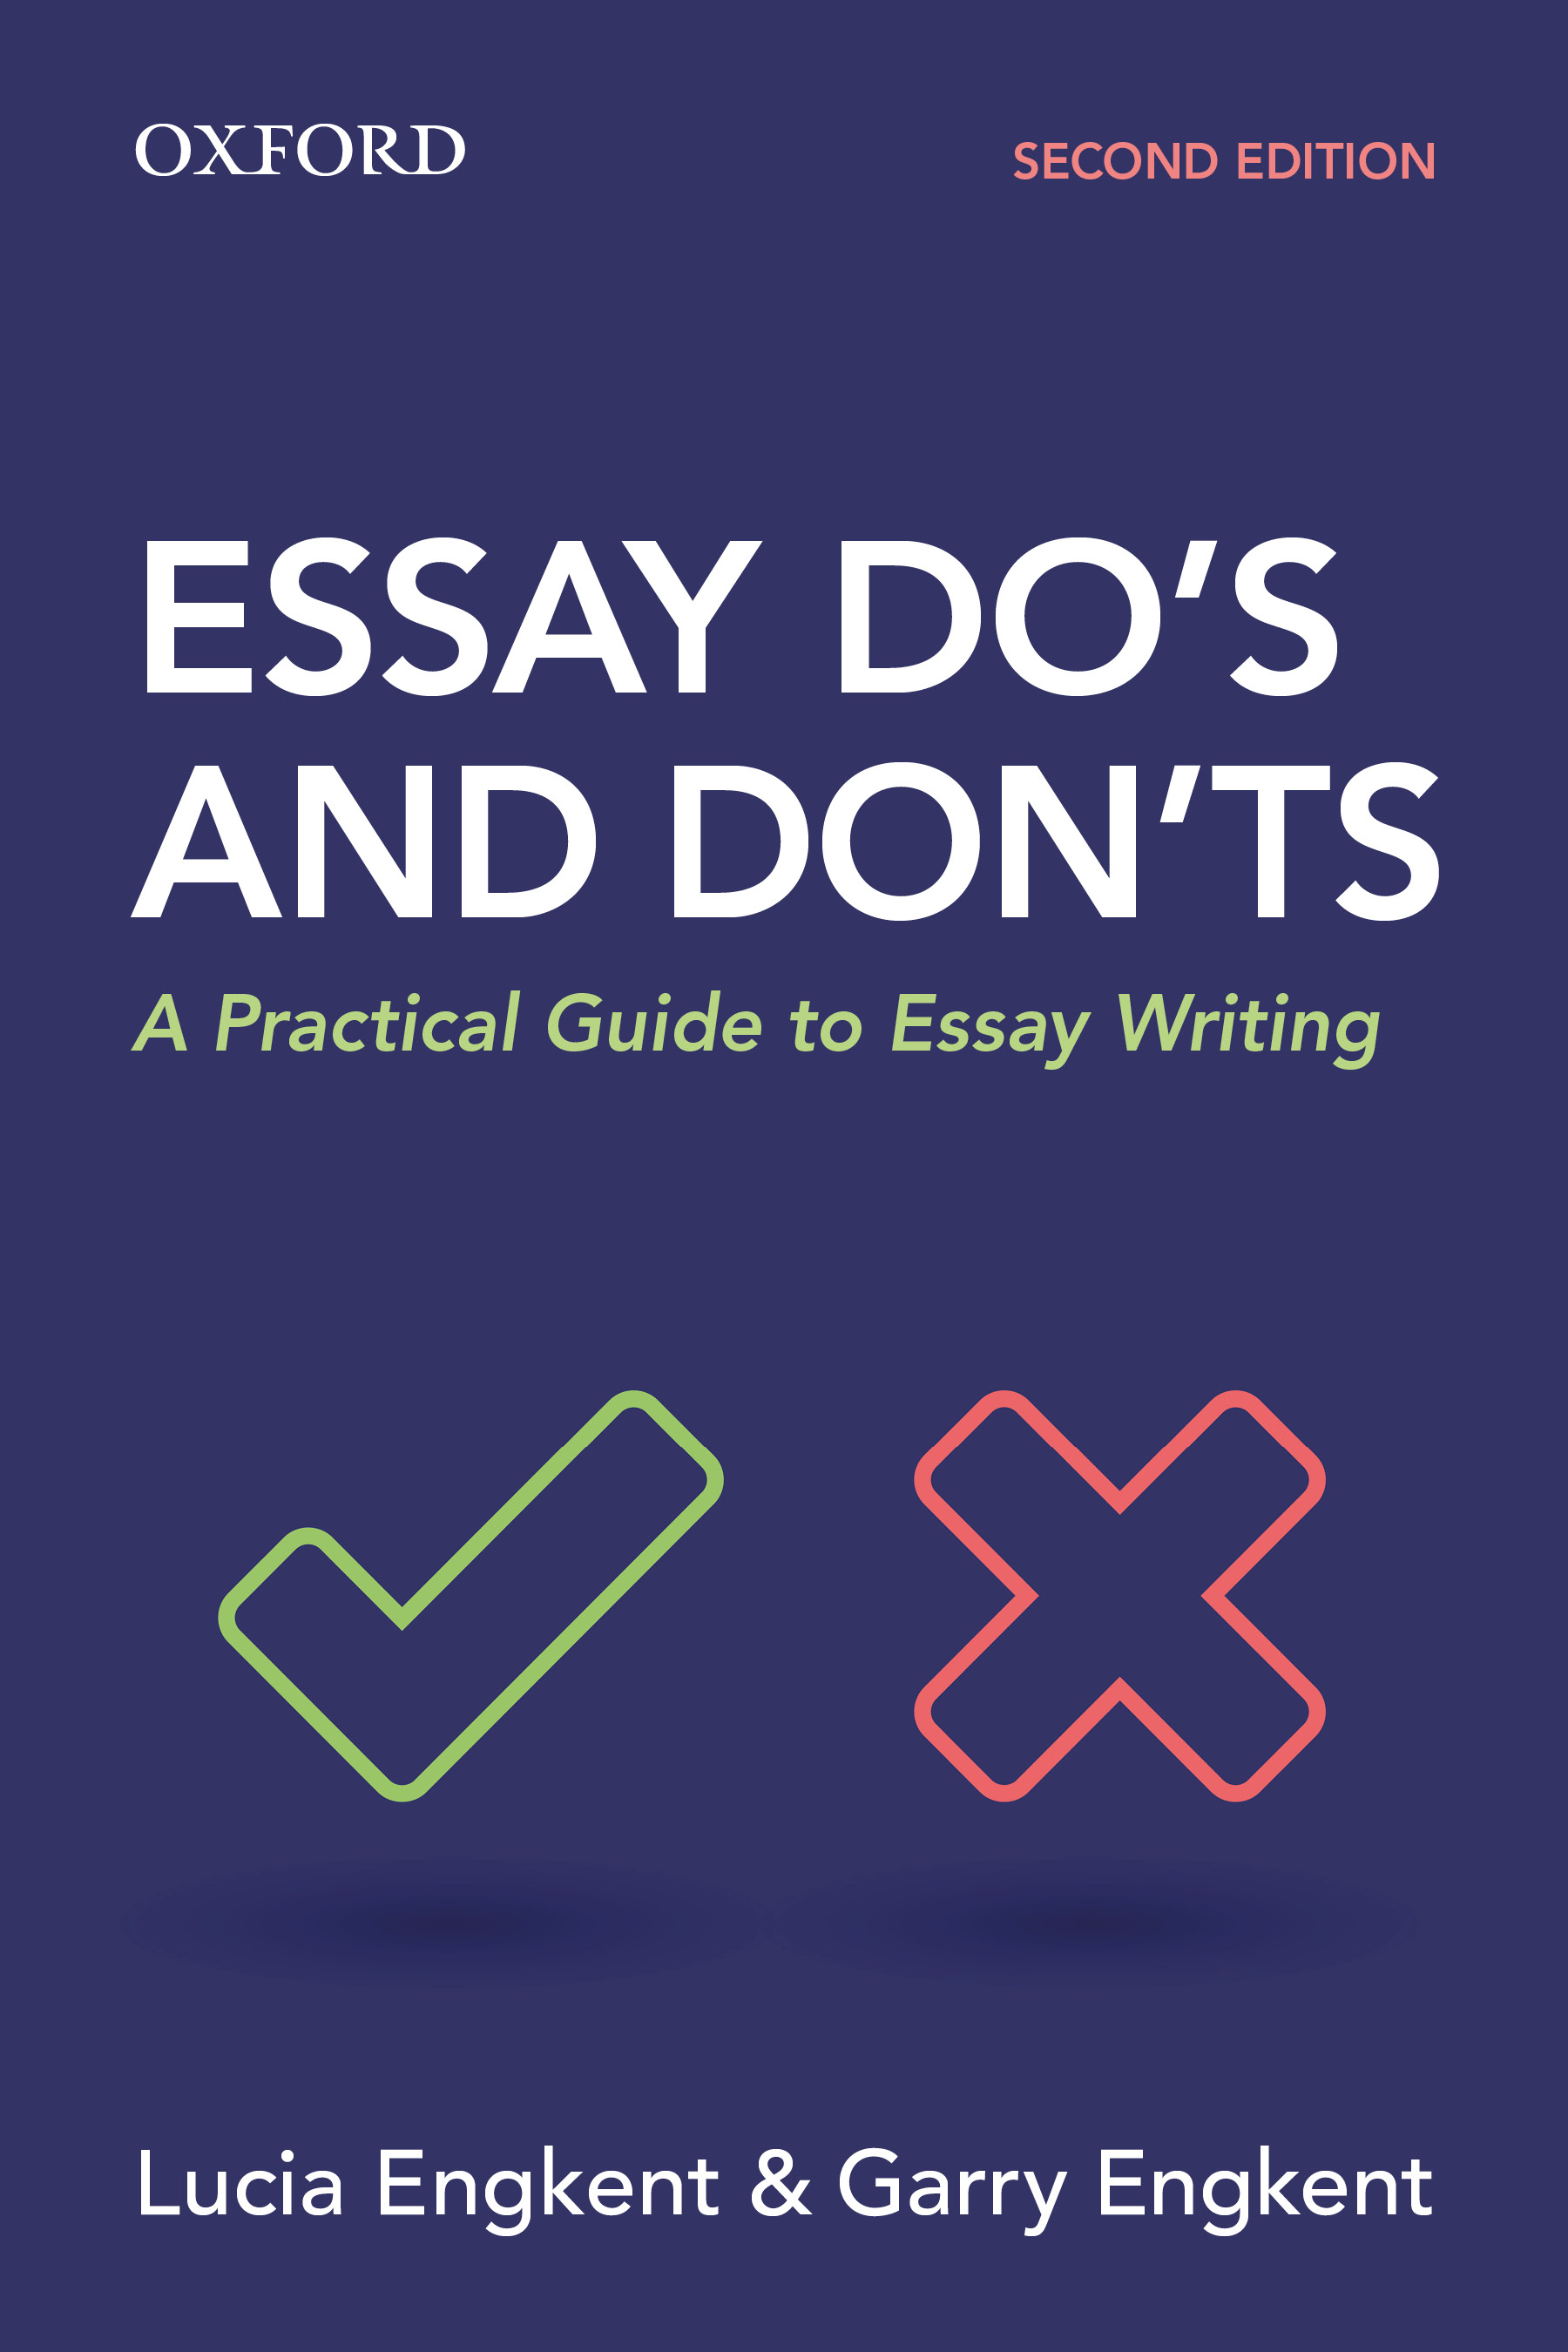 Essay Do's and Don'ts 2e